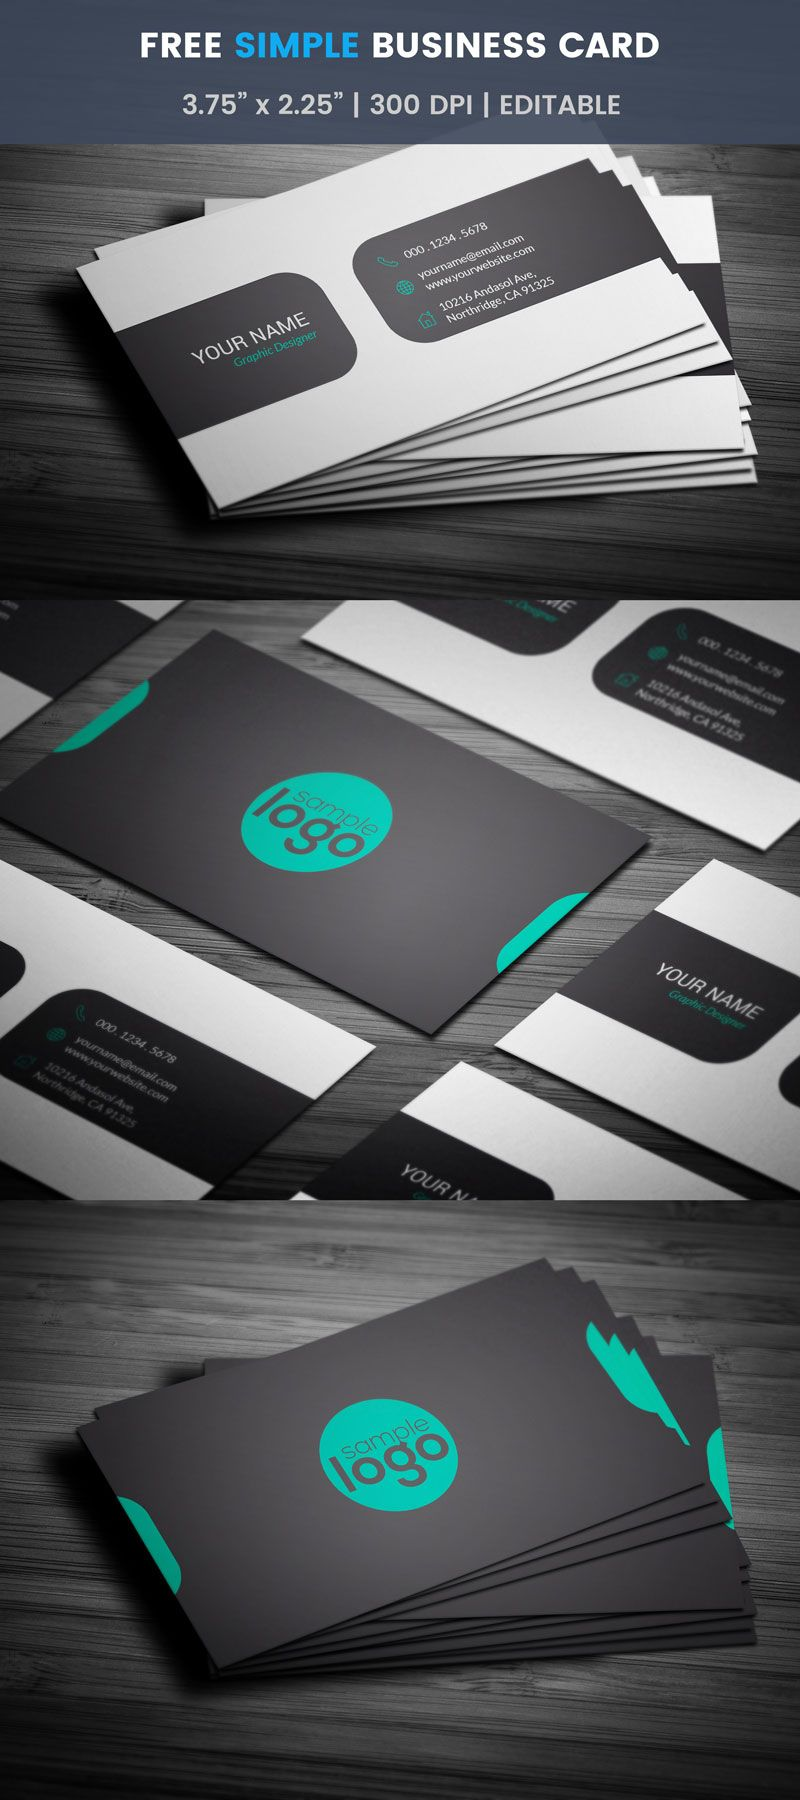 Free Free Brand Manager Business Card Simple Business Cards